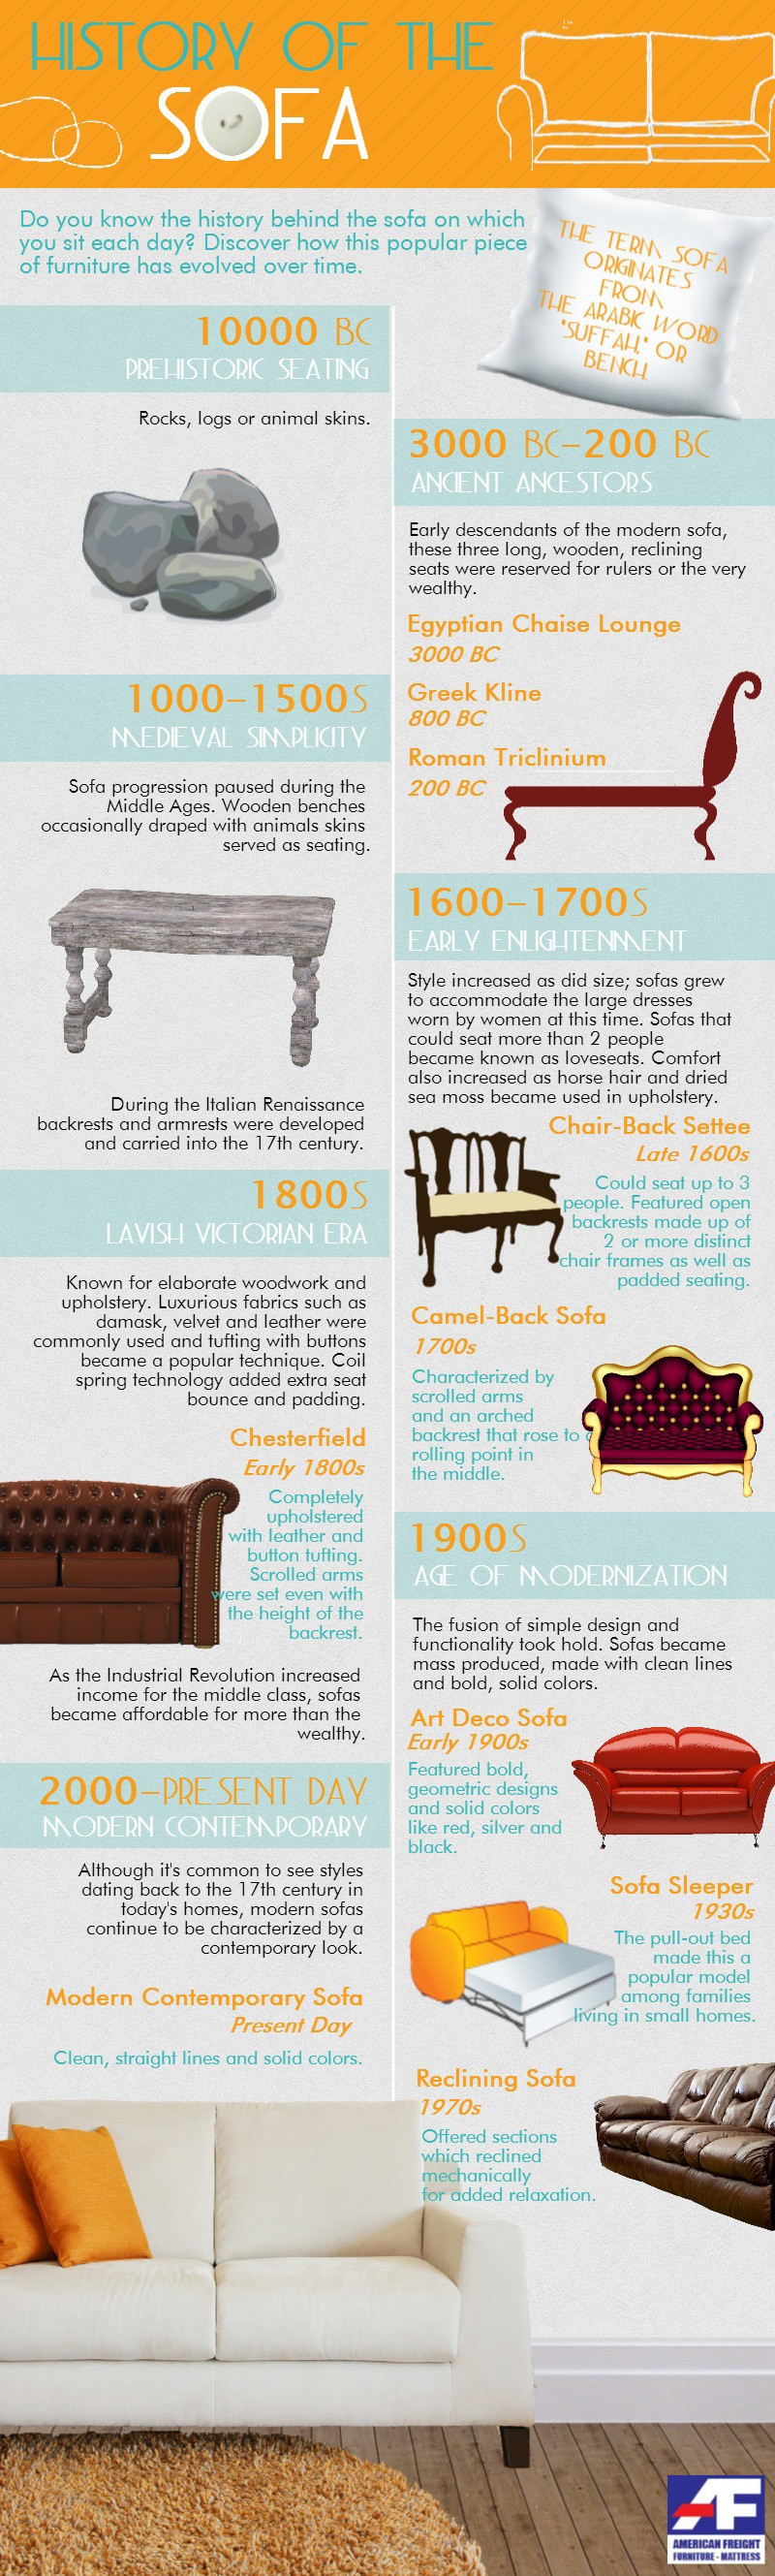 History of the Sofa - Infographic